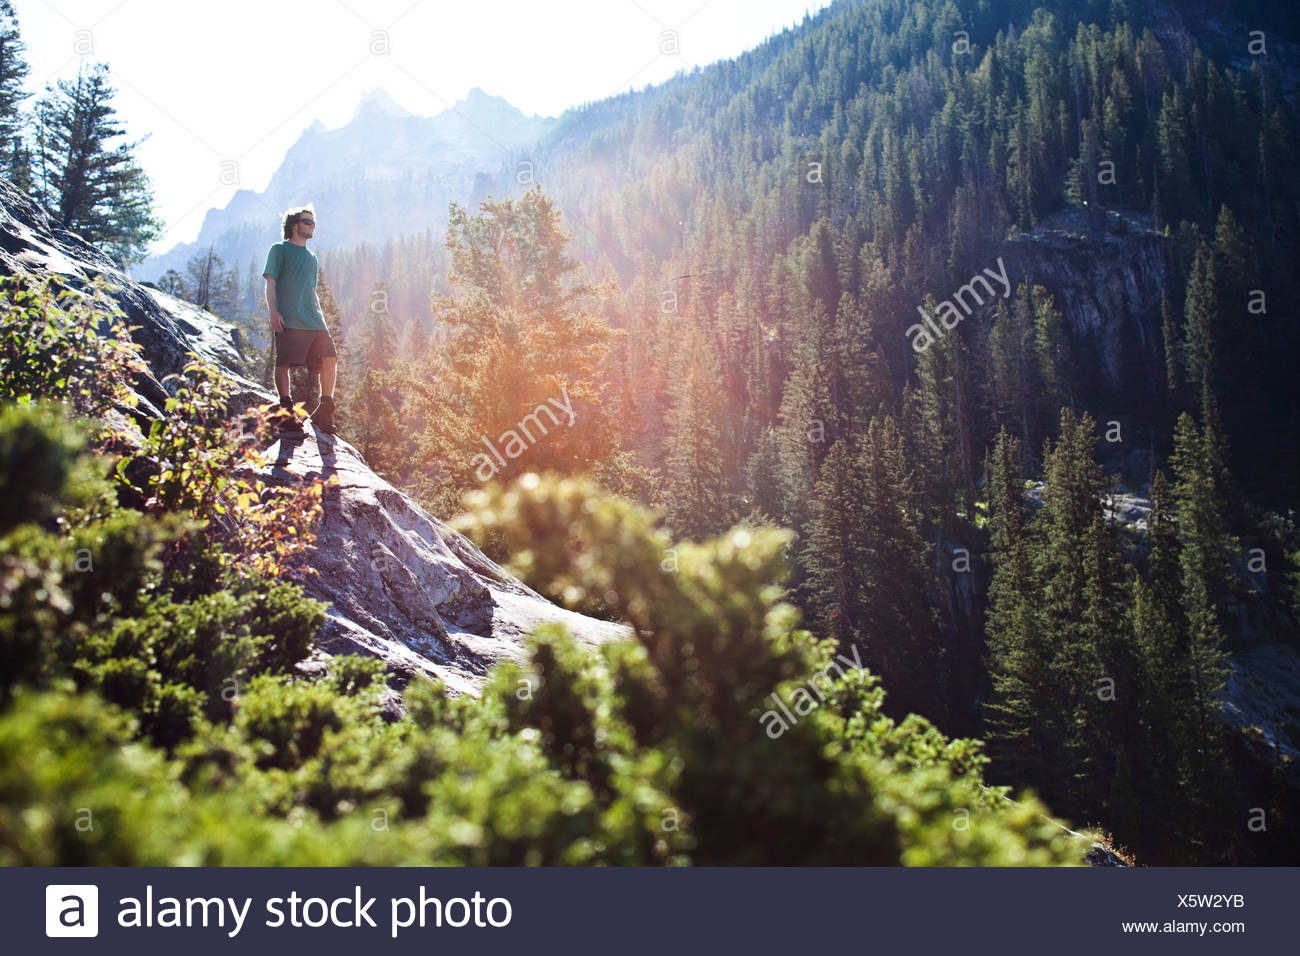 A young man hiking looks out over the valley in Wyoming. - Stock Image